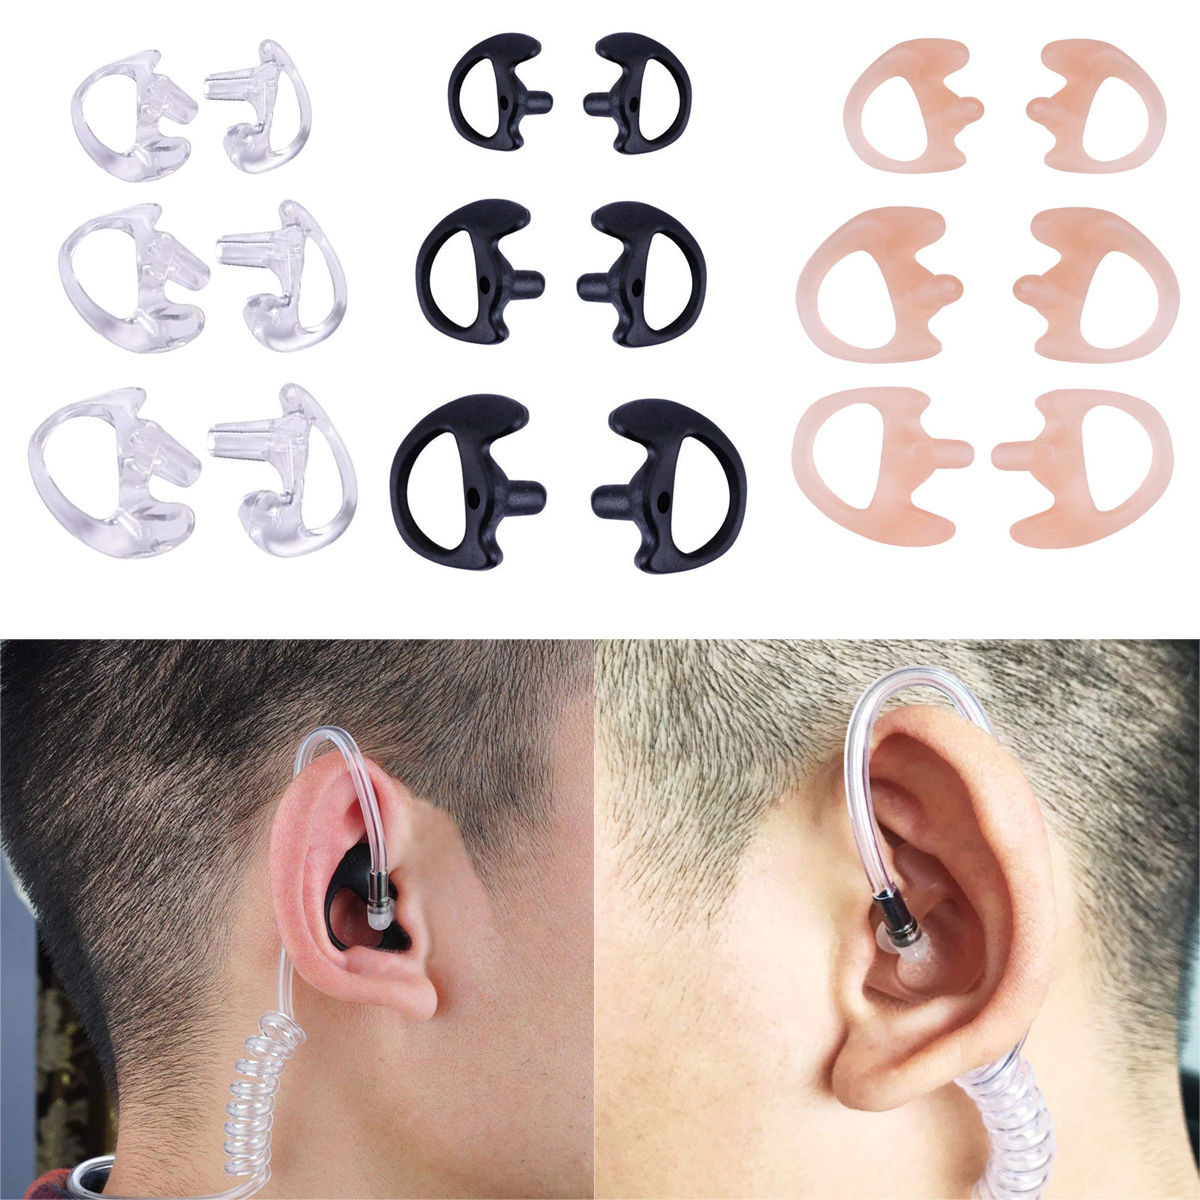 Extra Small Clear Earmold Left And Right Included For Acoustic Tube Earpiece